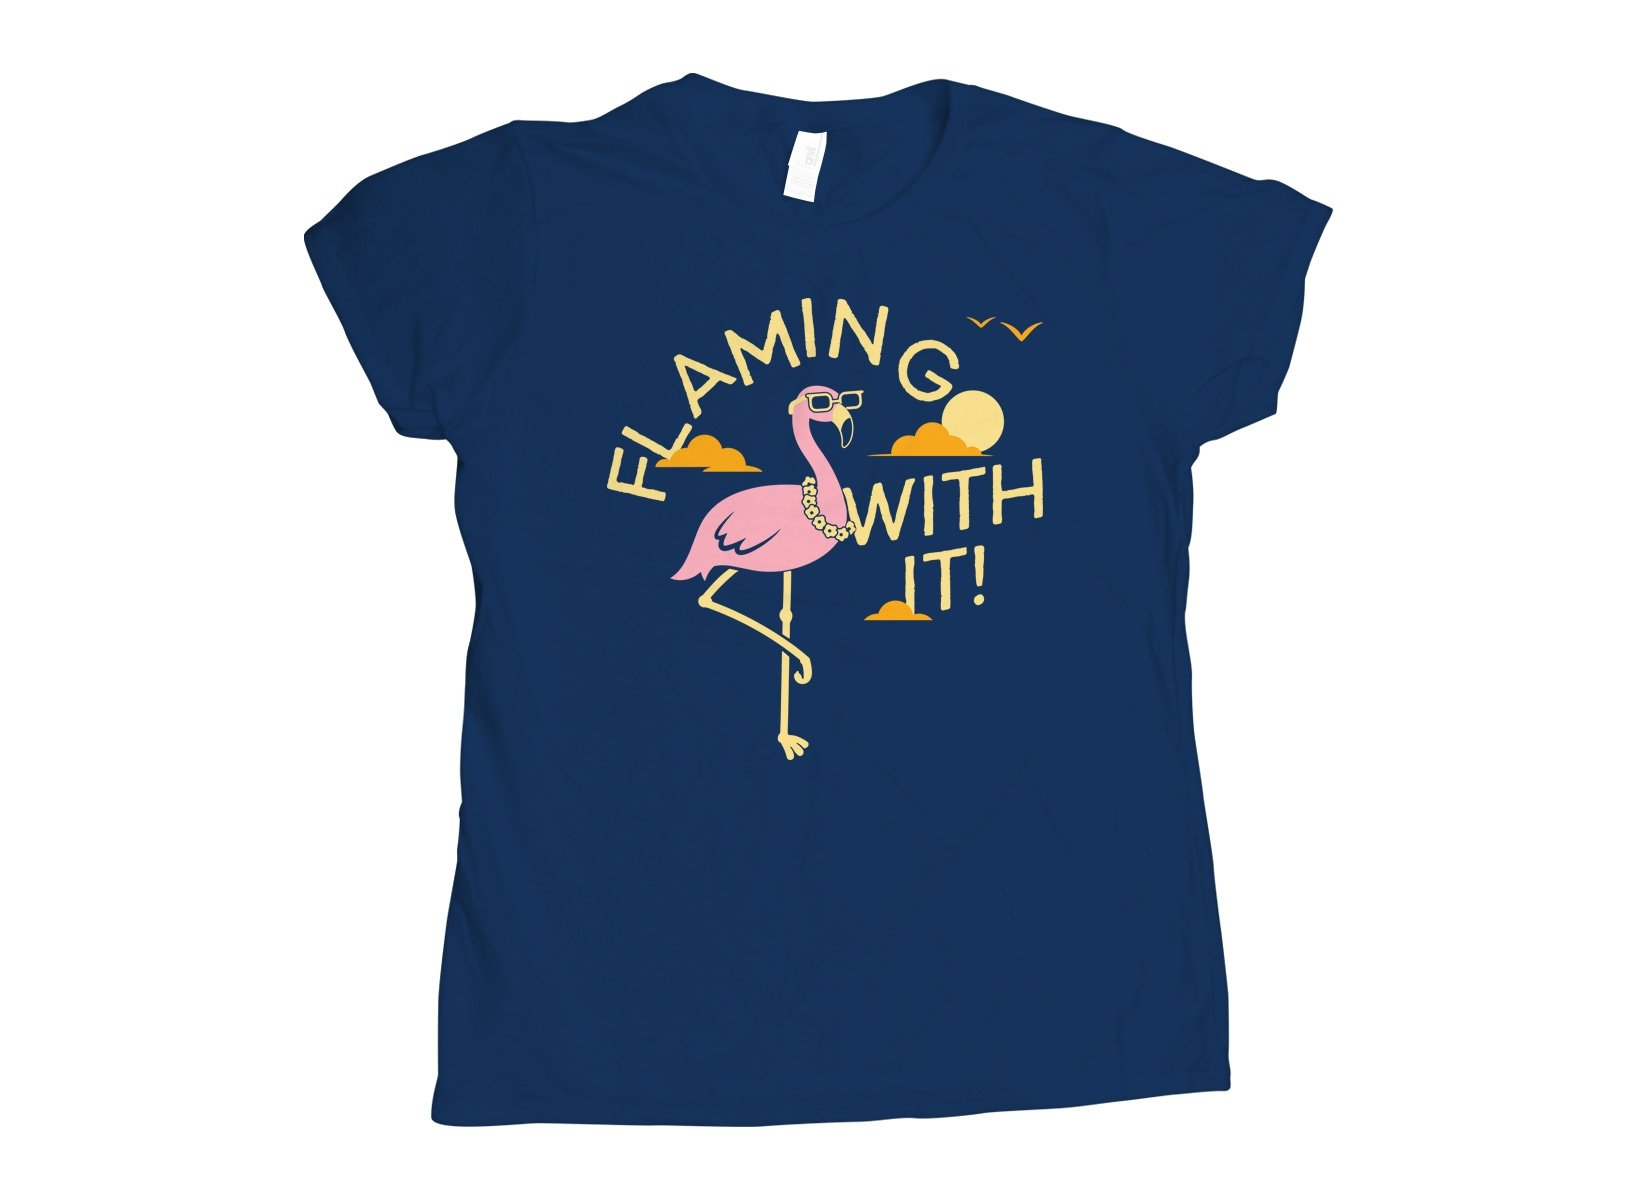 Flamingo With It on Womens T-Shirt